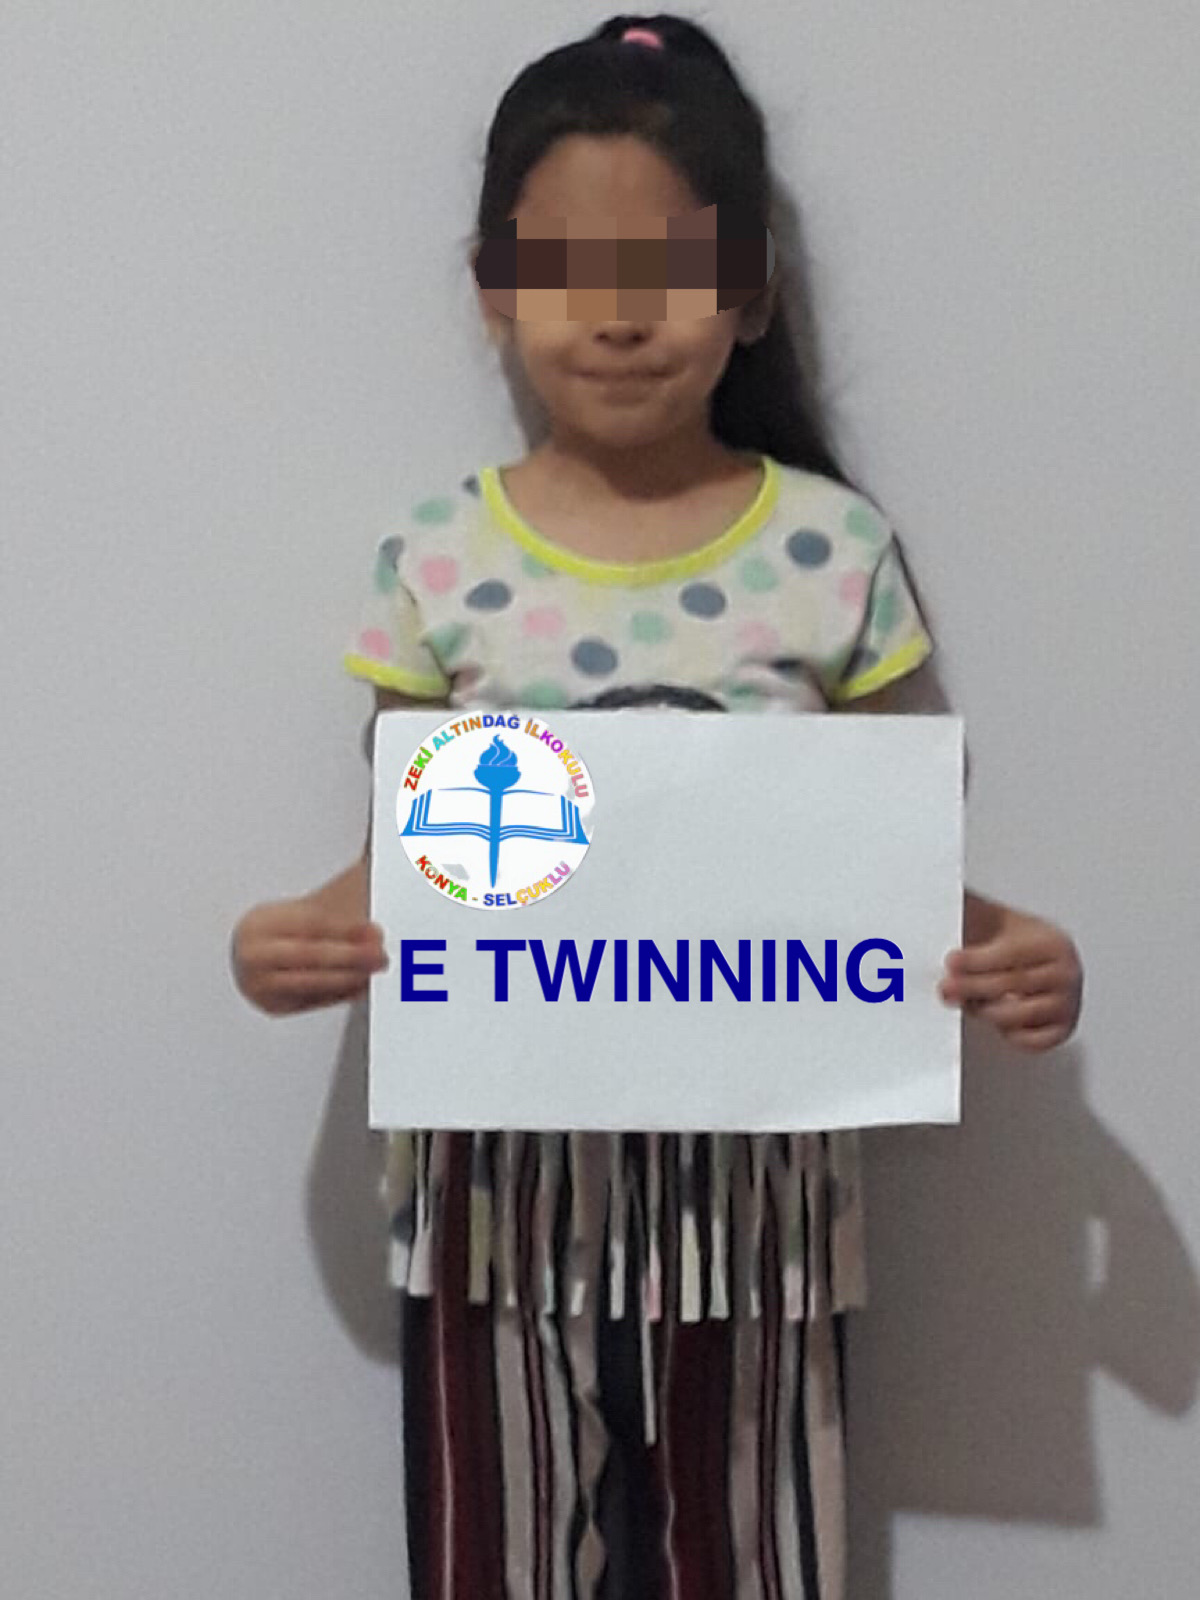 We Can Achieve Together-Etwinning Day by Tbylc - Illustrated by N. Tuba YULCU - Ourboox.com